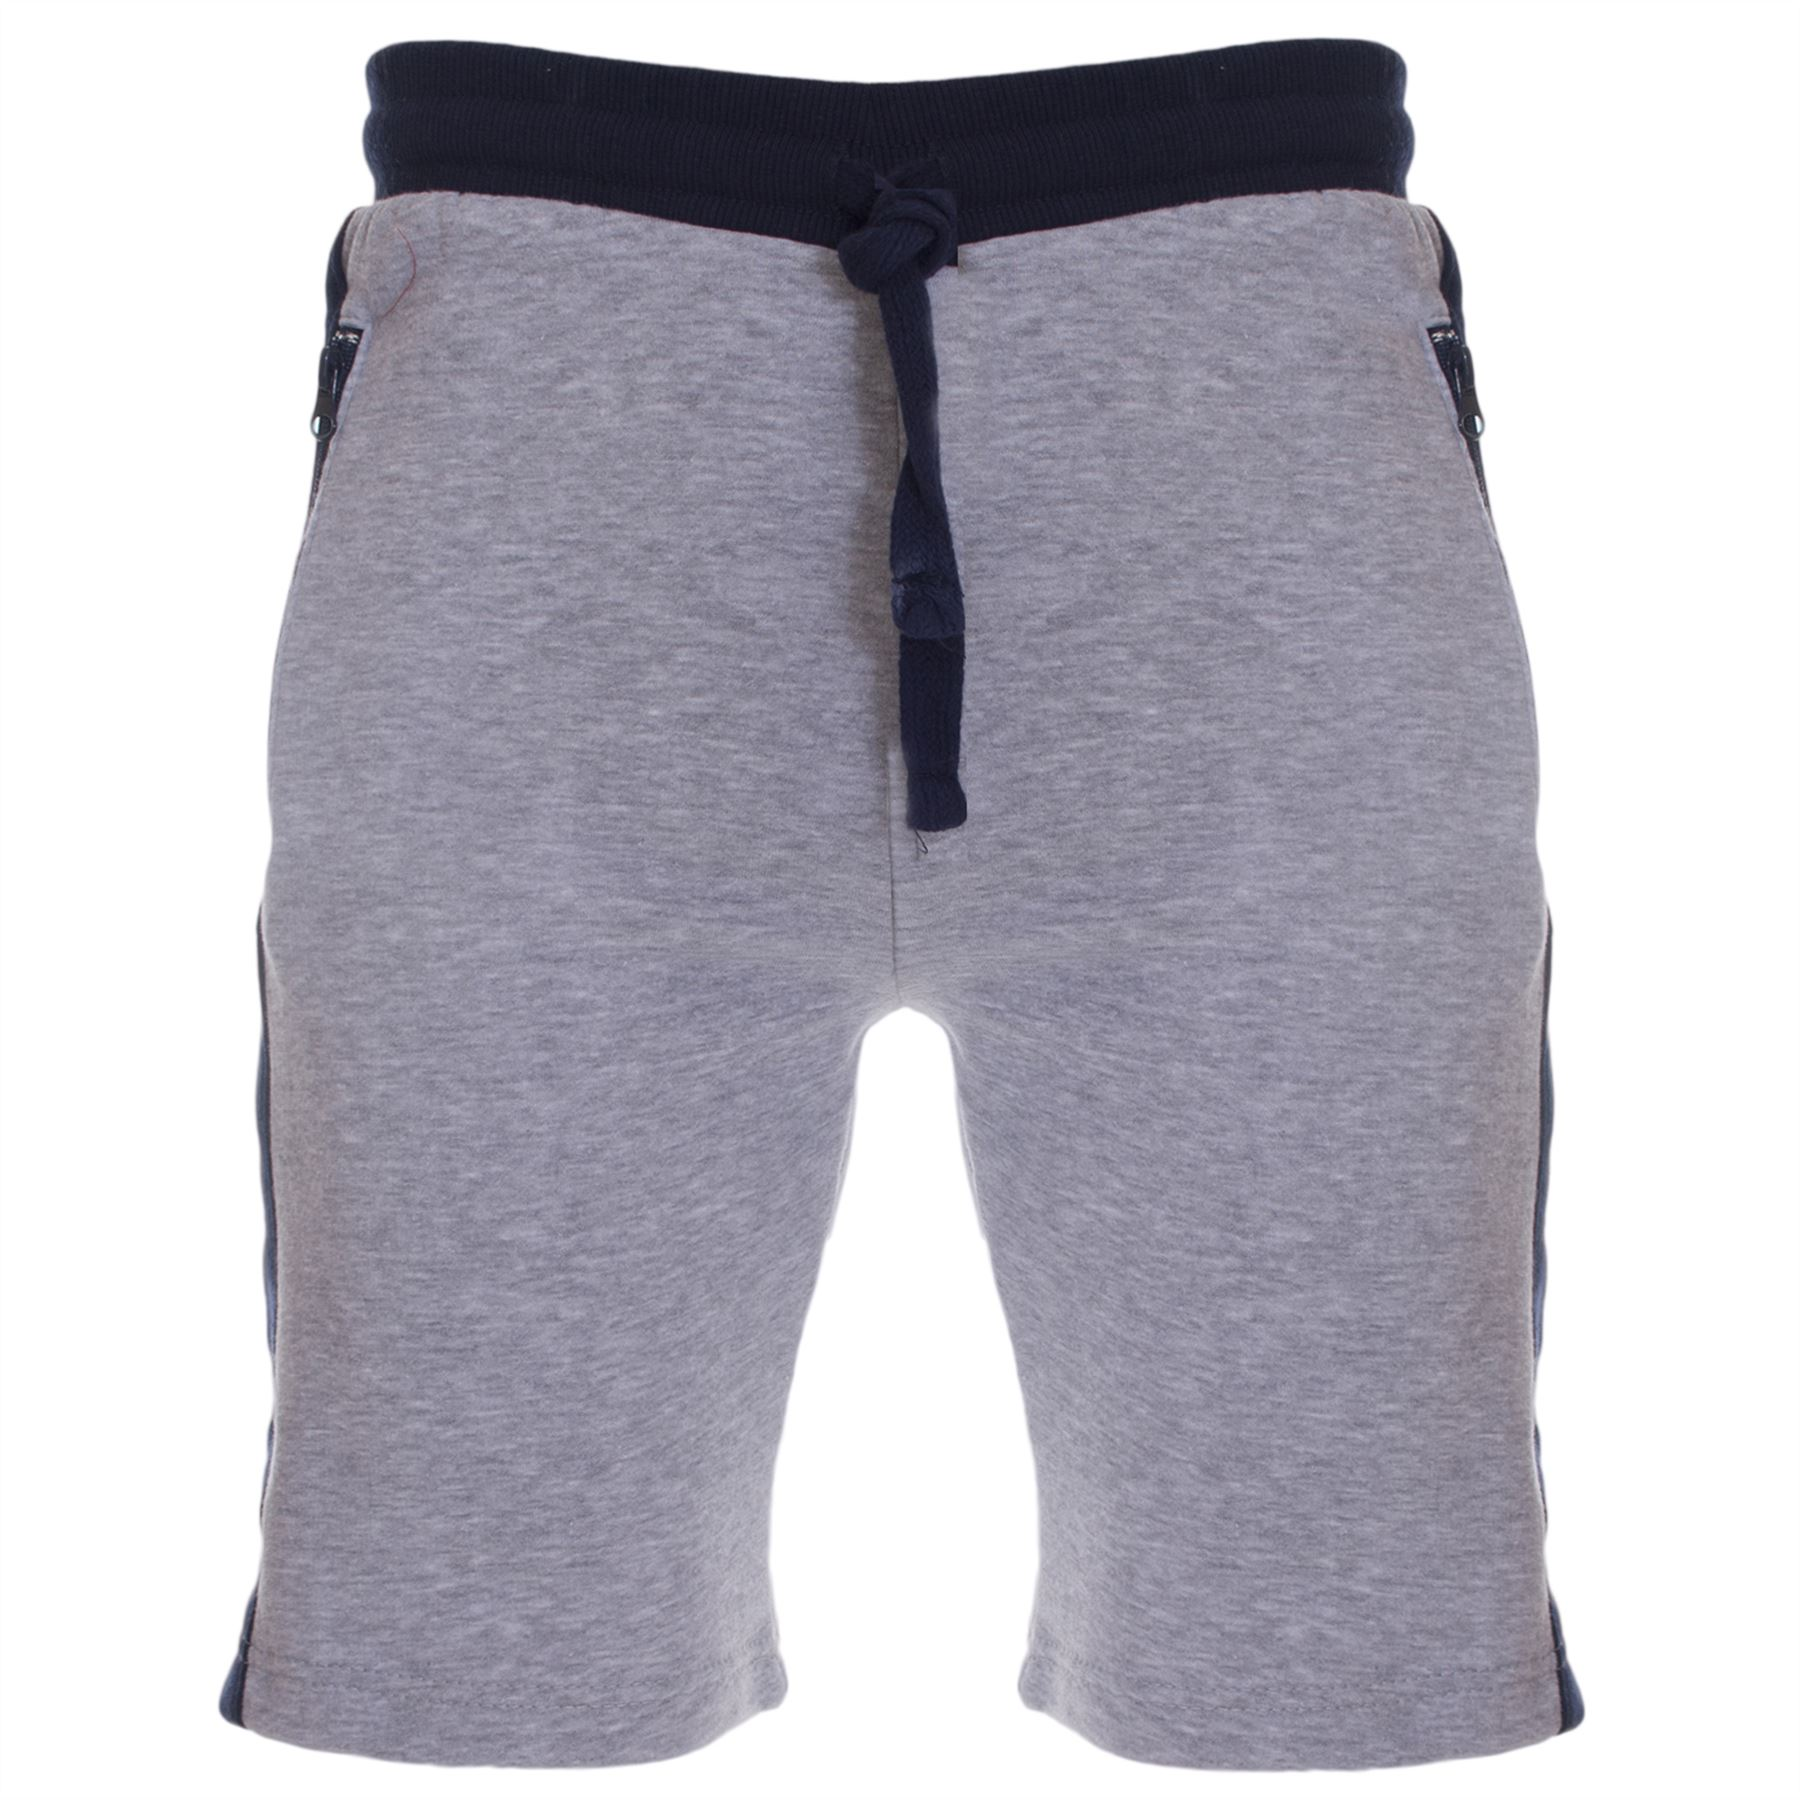 Mens Fleece Pants at Macy's come in all styles and sizes. Shop Men's Pants: Dress Pants, Chinos, Khakis, Fleece pants and more at Macy's! Macy's Presents: The Edit- A curated mix of fashion and inspiration Check It Out. Free Shipping with $99 purchase + Free Store Pickup. Contiguous US.